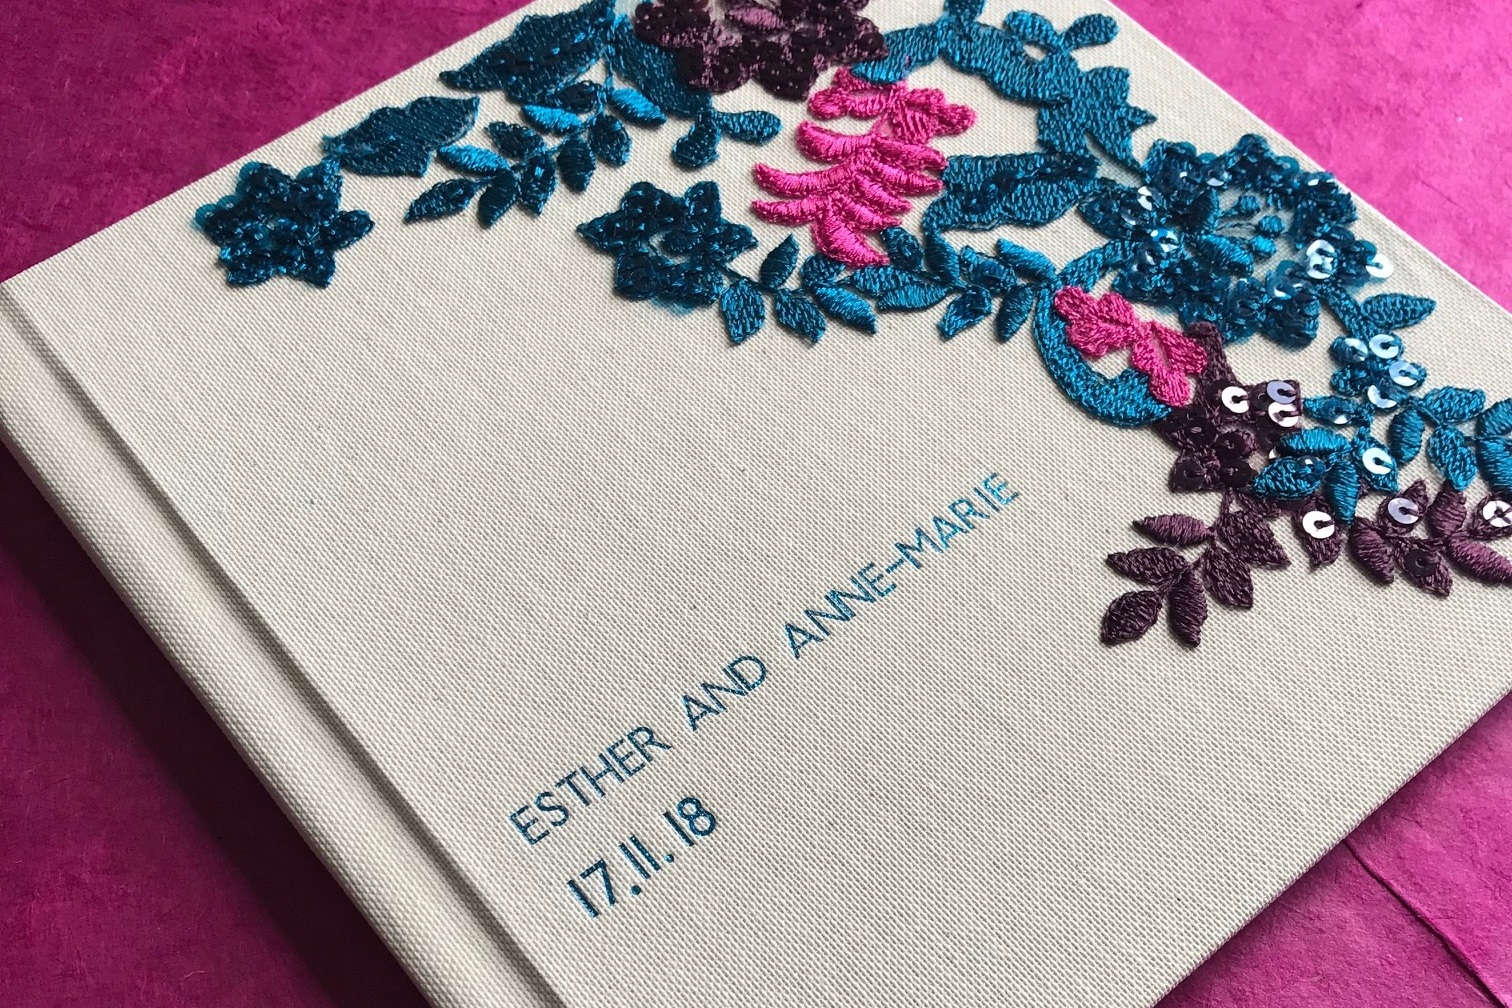 Wedding album: this has a printed book inside, the customer provided the printed book and i did the case for it.